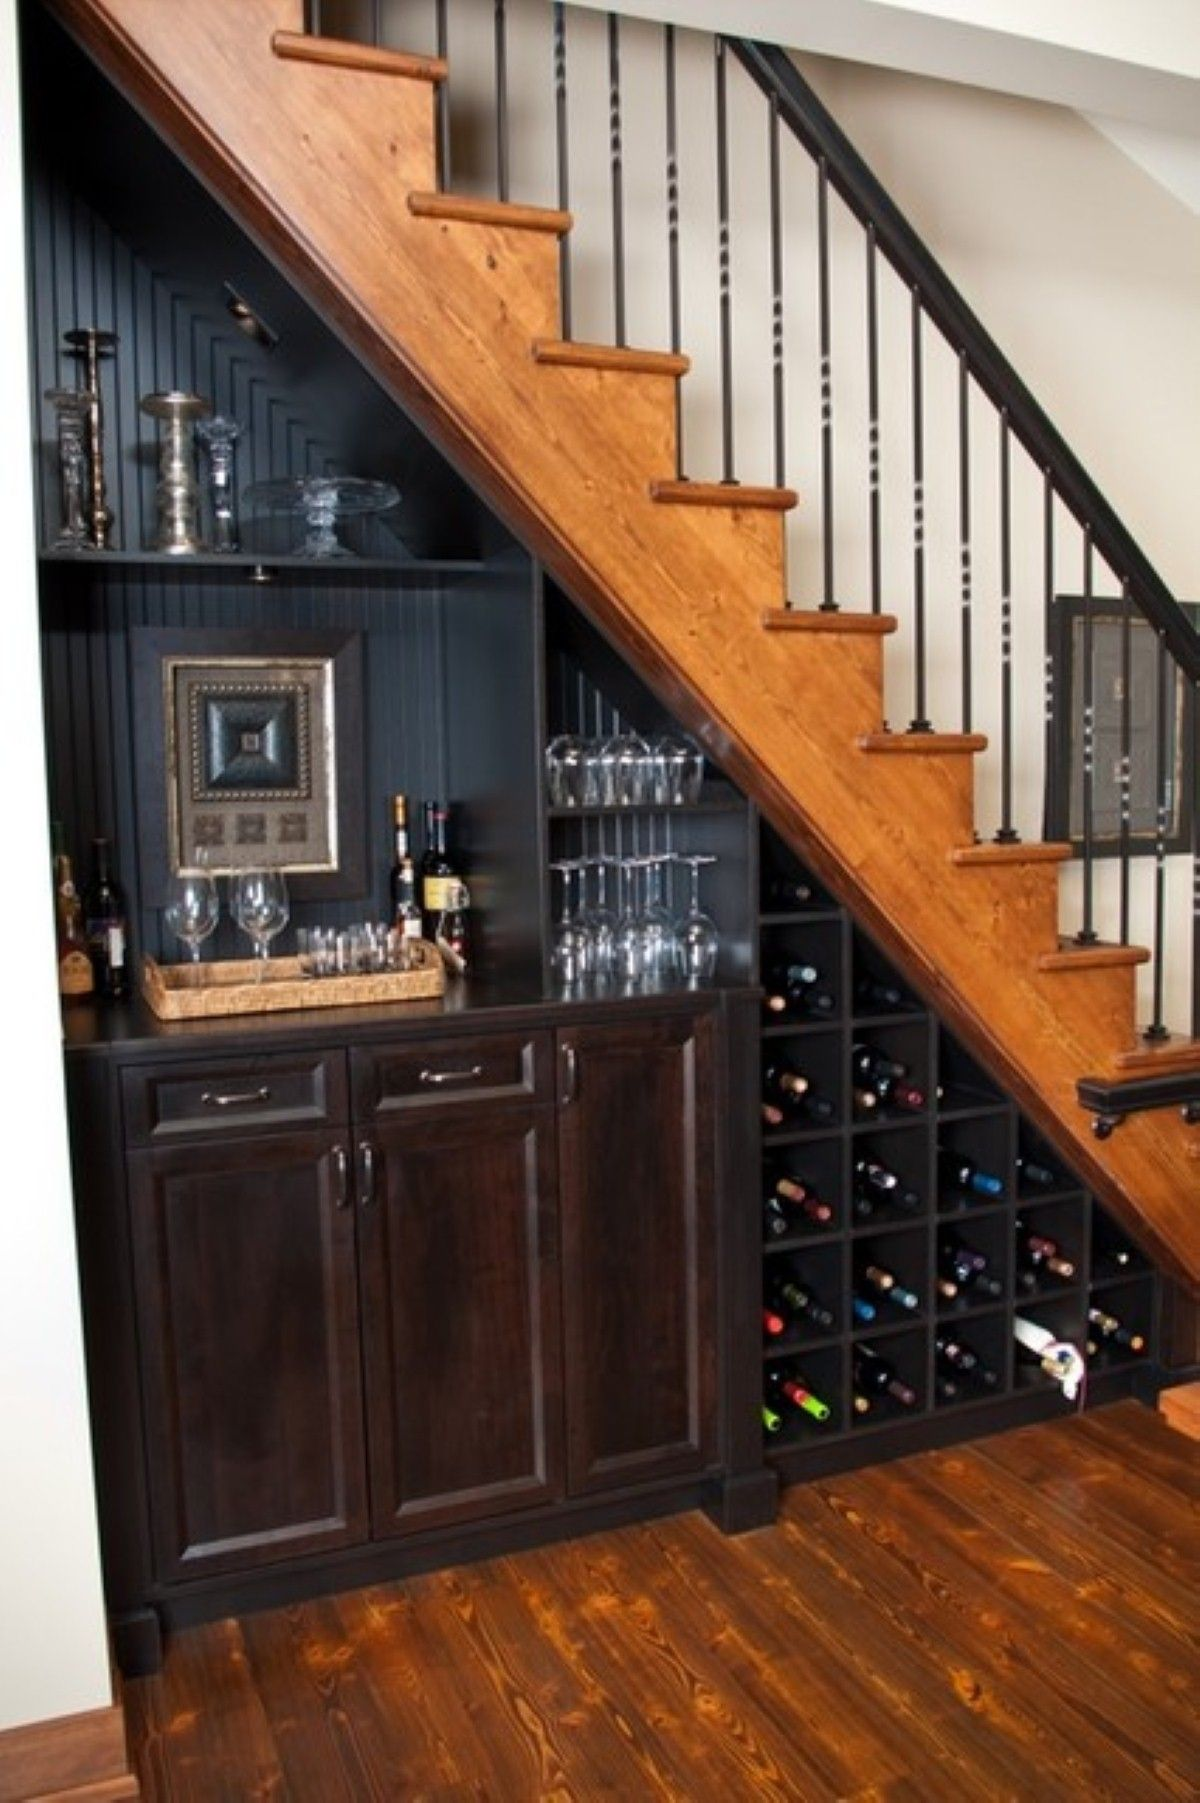 Fascinating dark black staircase design with dark wine storage under